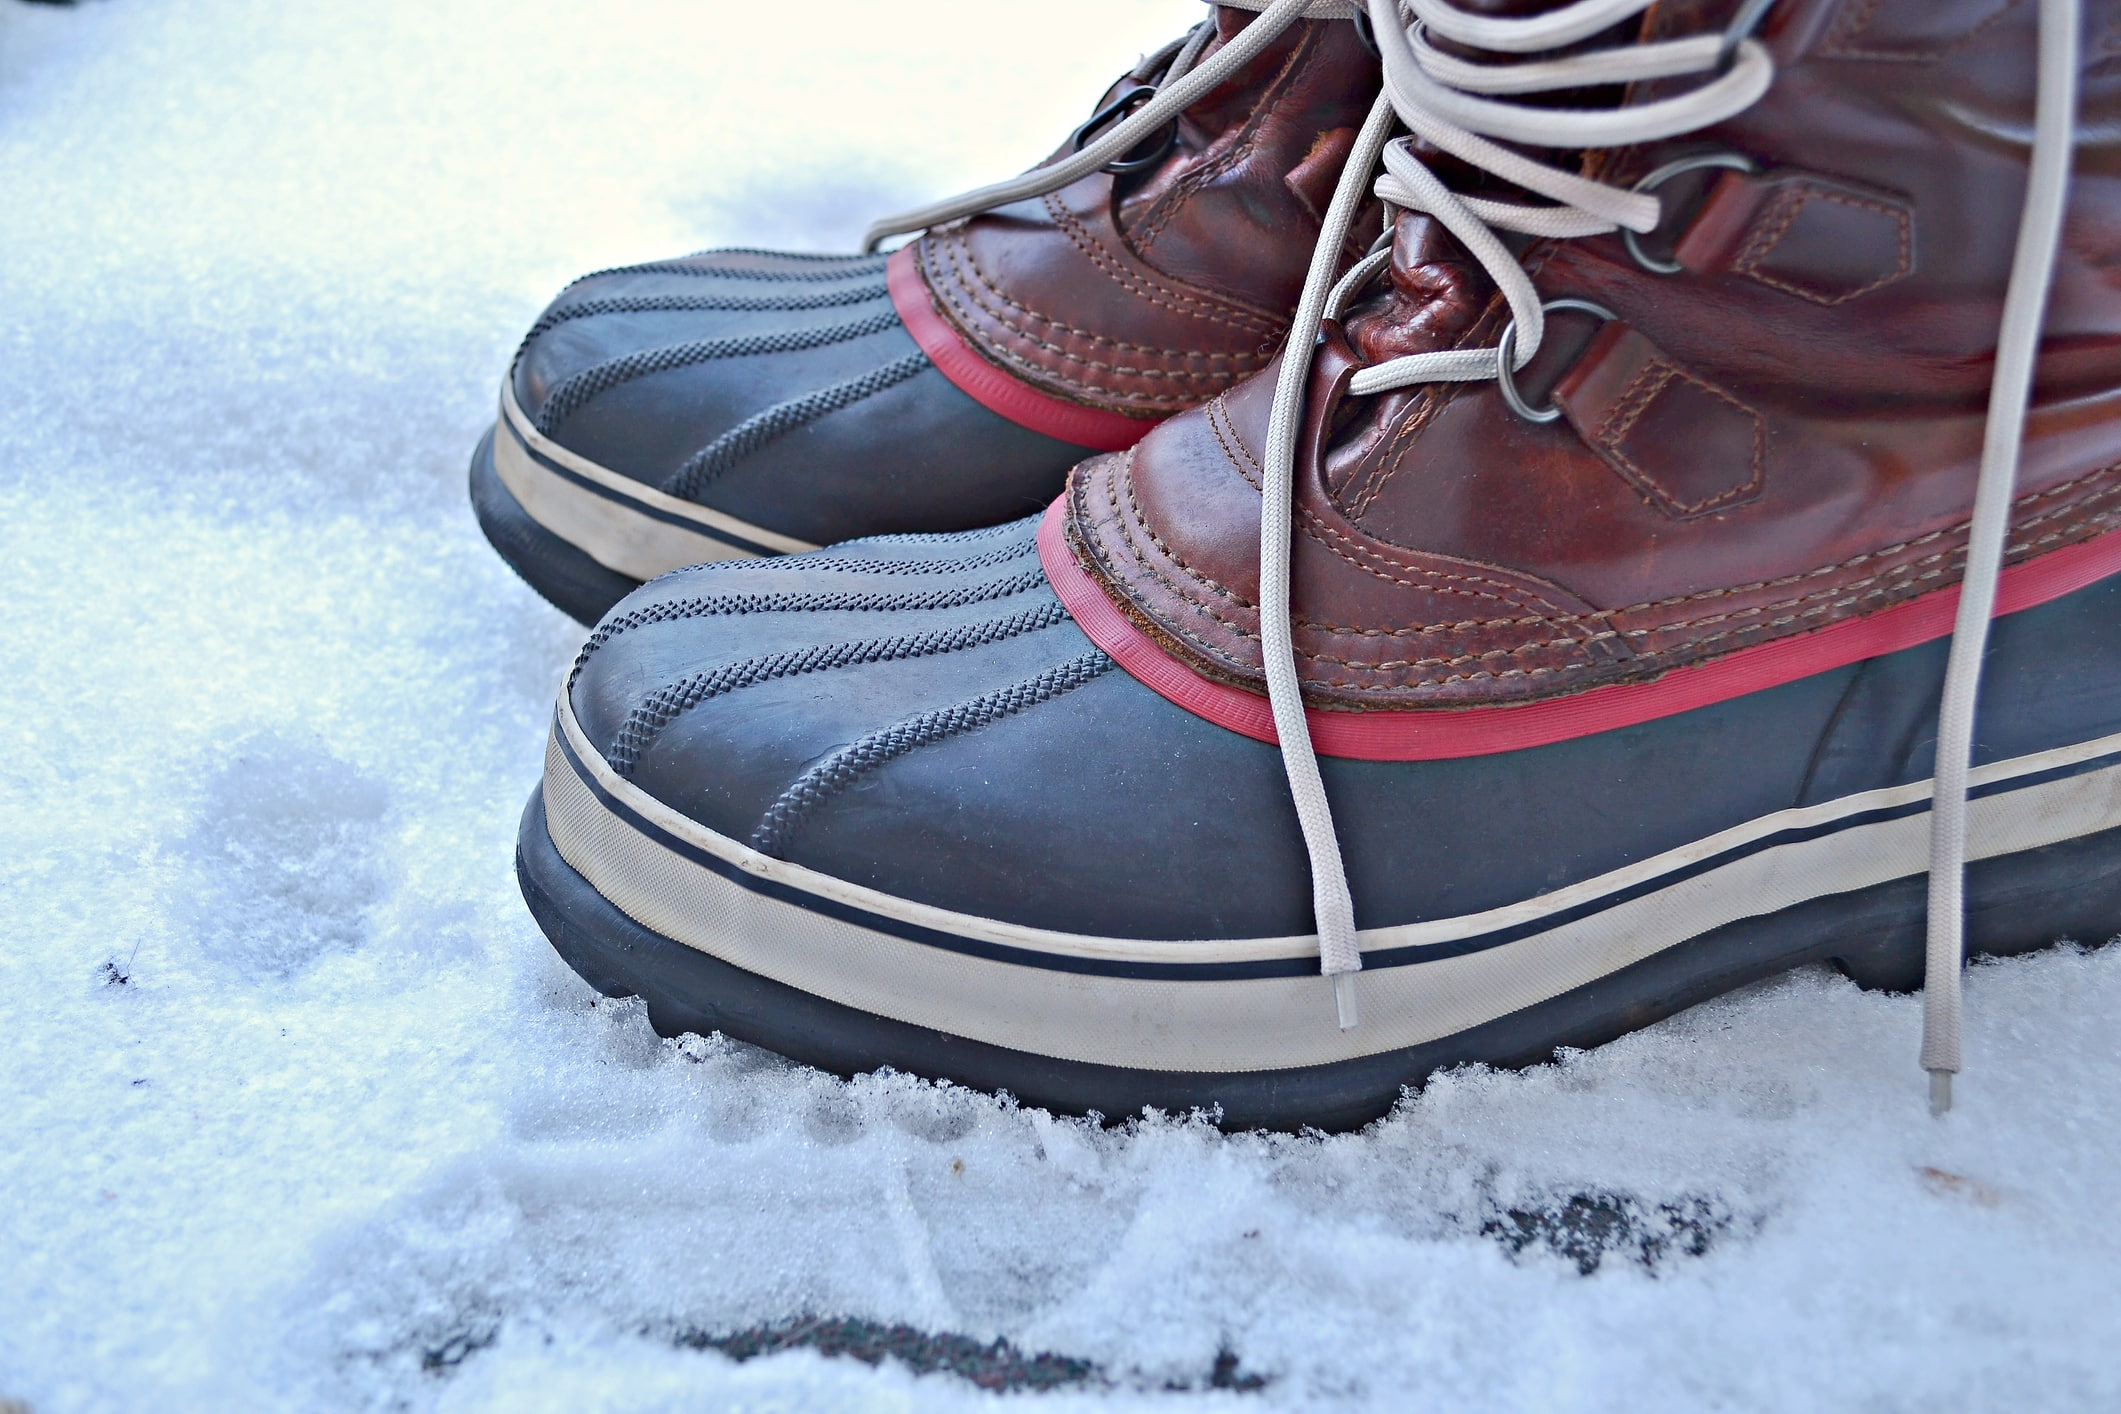 Men's snow boots standing on snow outdoors